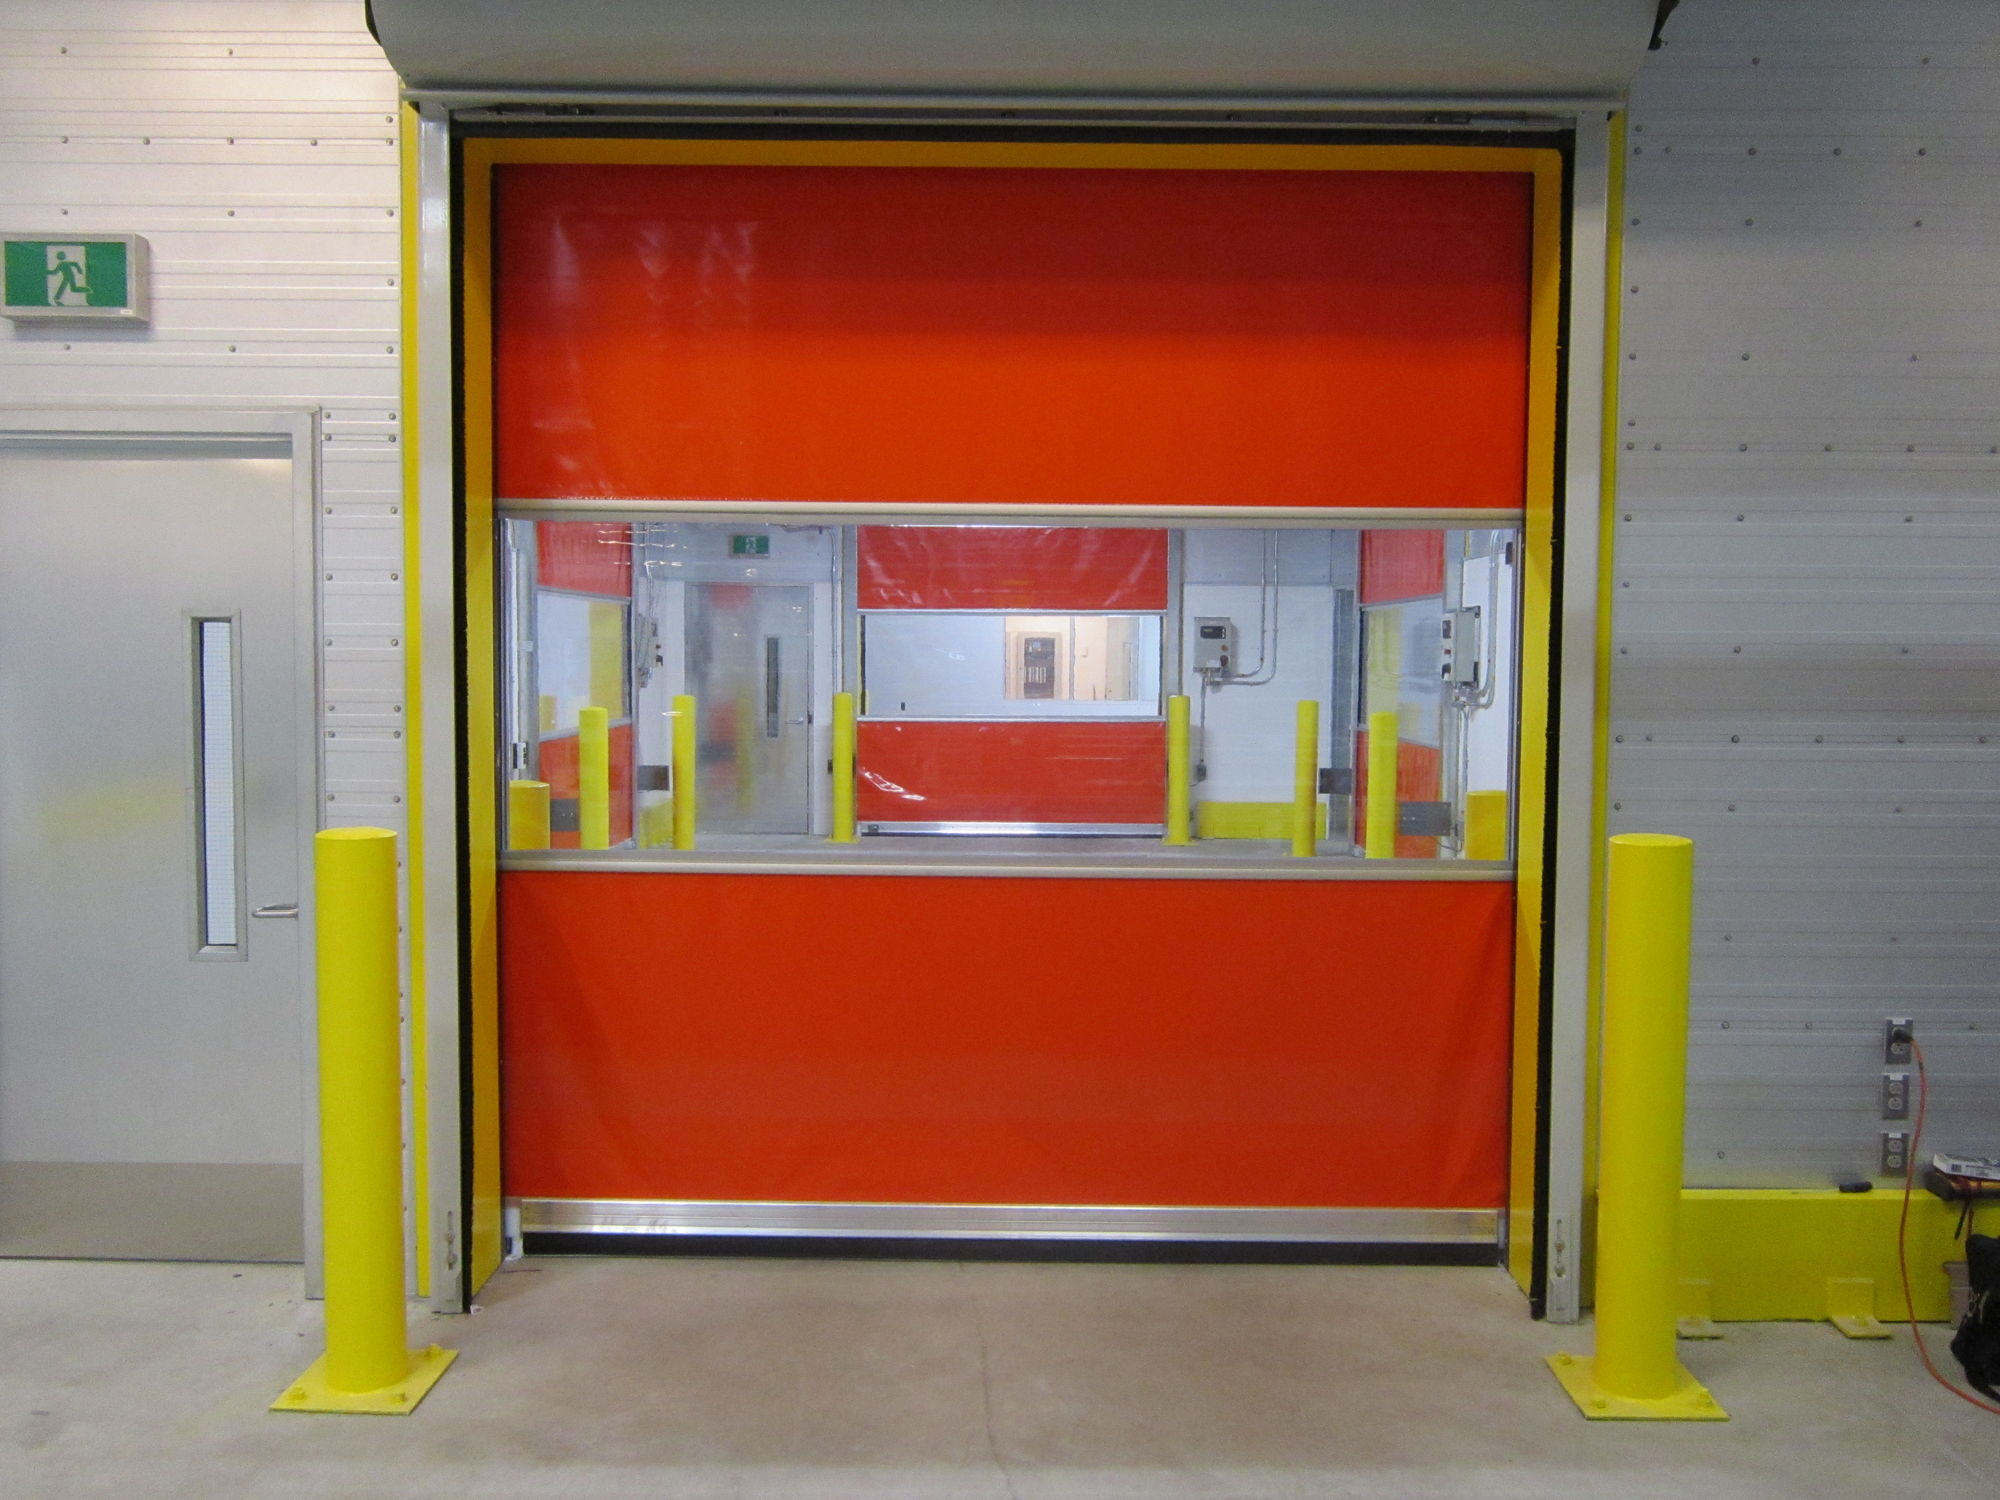 intellicore series doors energy polyurethane mt with airport commercial baker door overhead garage steel industrial spokane